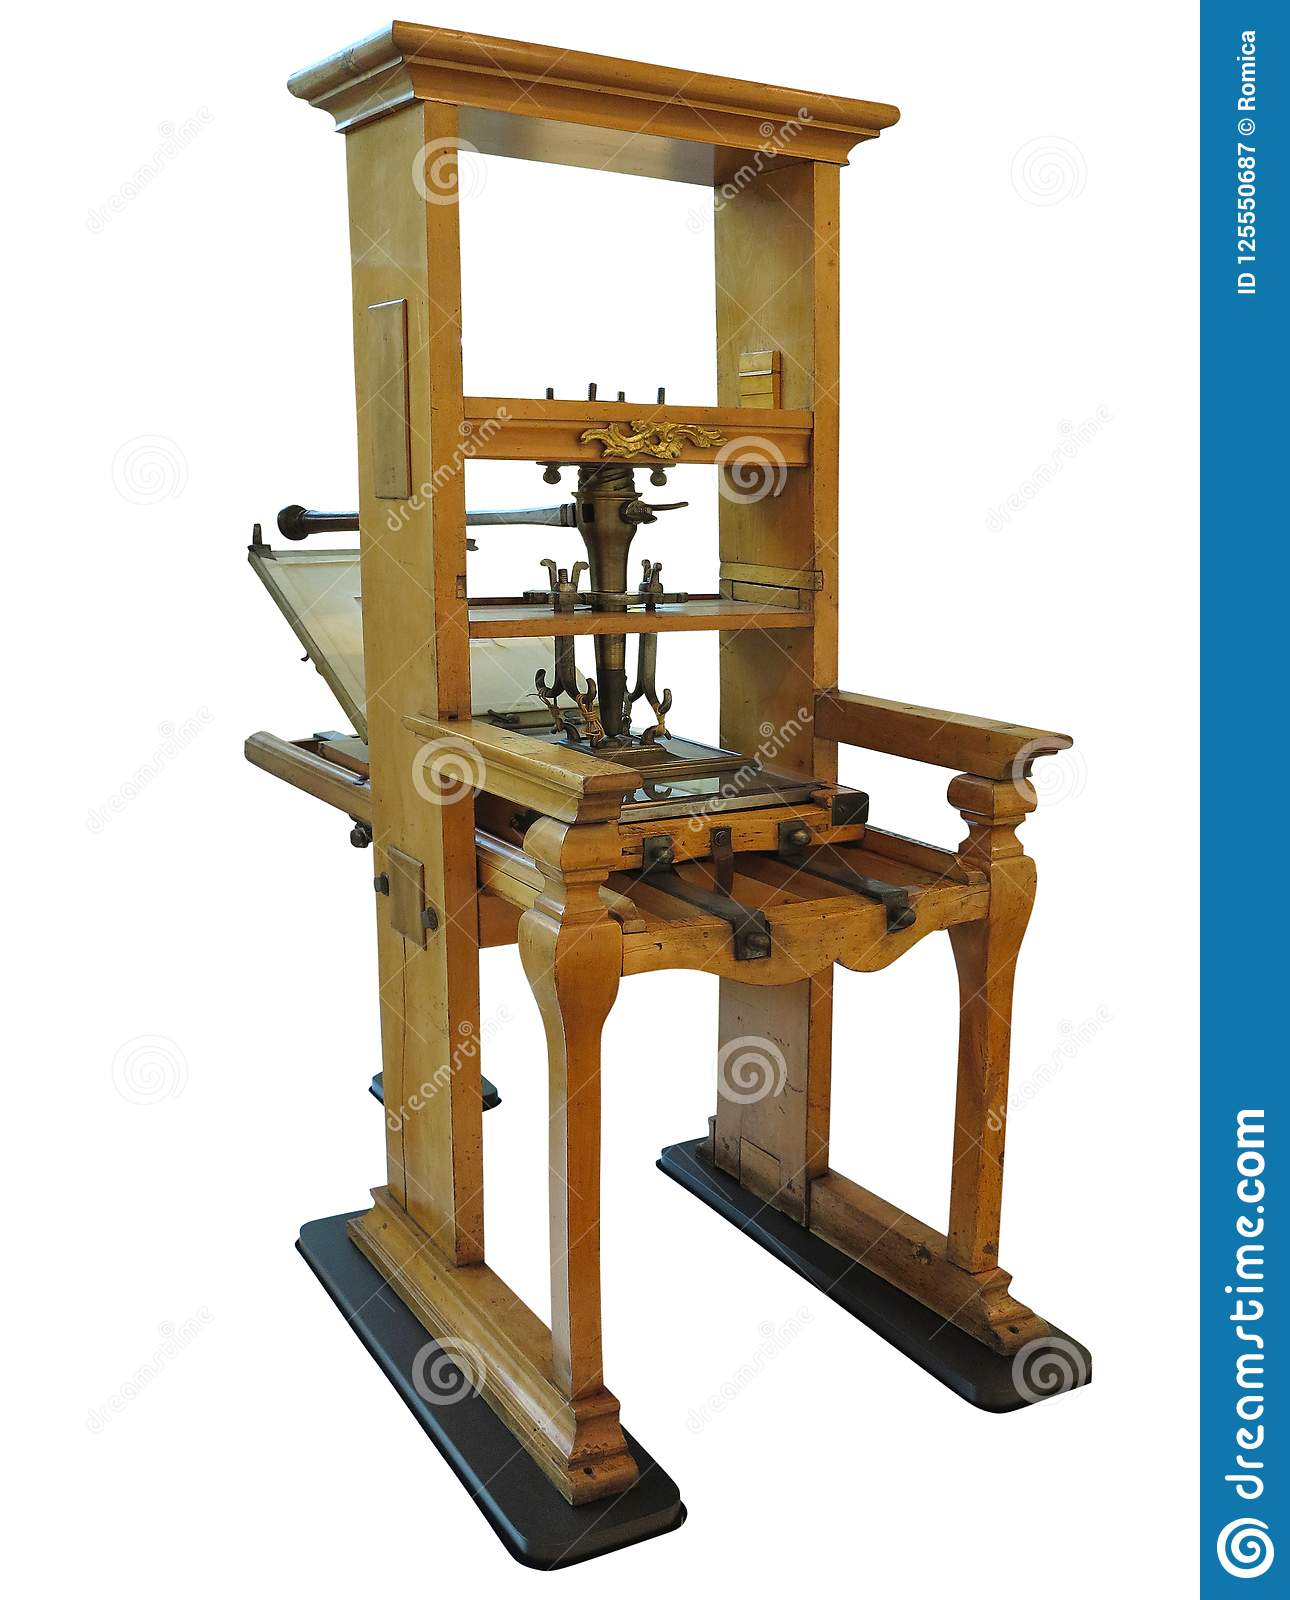 Vintage old letterpress printing manual machine isolated on whit